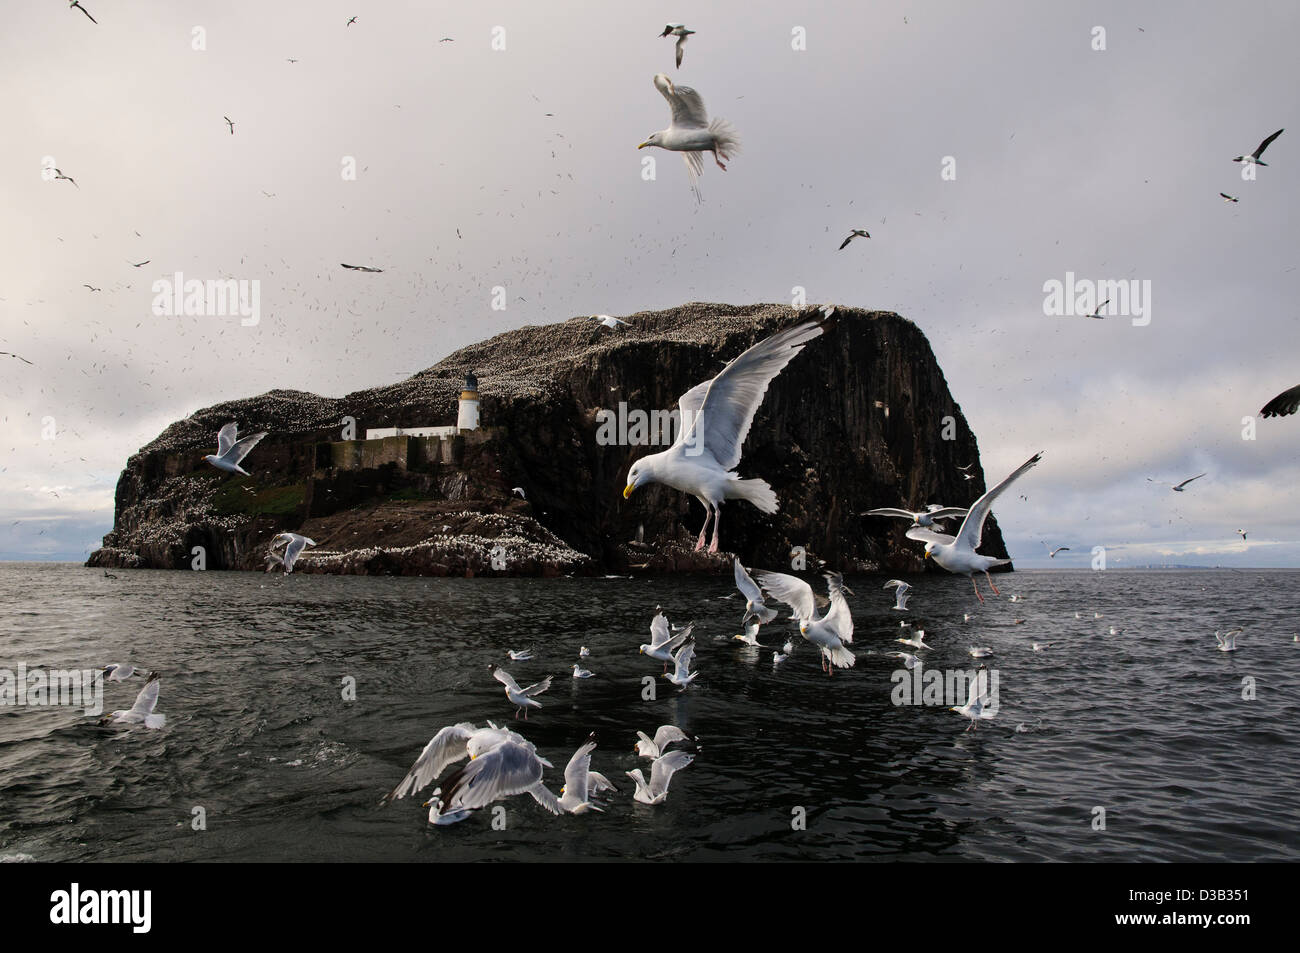 Herring gulls (Larus argentatus) pouncing on fish tossed into the water to attract gannets near the Bass Rock. - Stock Image